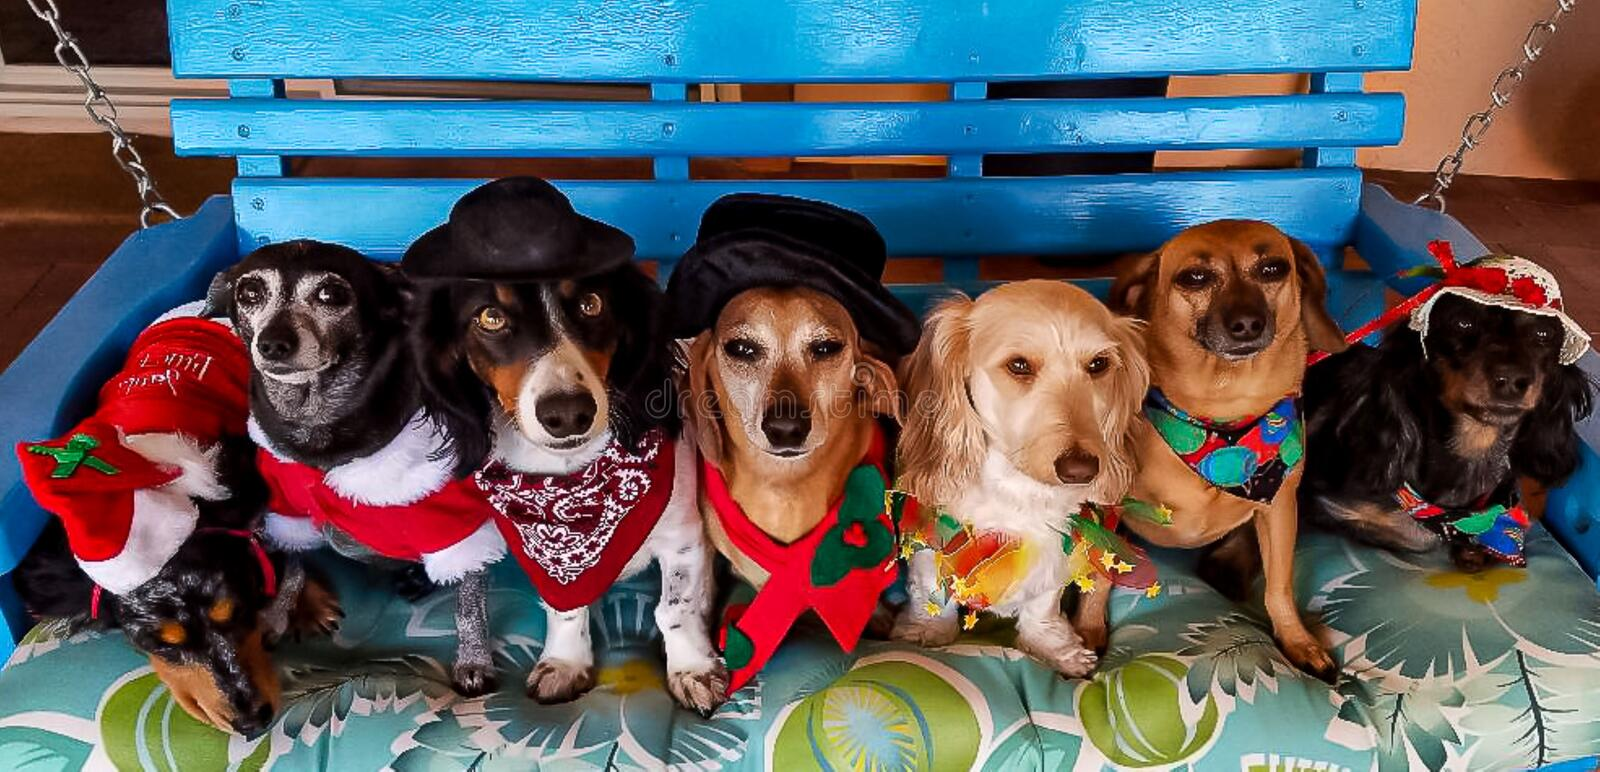 Dachshunds all dressed up for Christmas. Seven dachshund dogs all dressed up in their Christmas outfits sitting in a blue swing posing for their picture...not at stock images